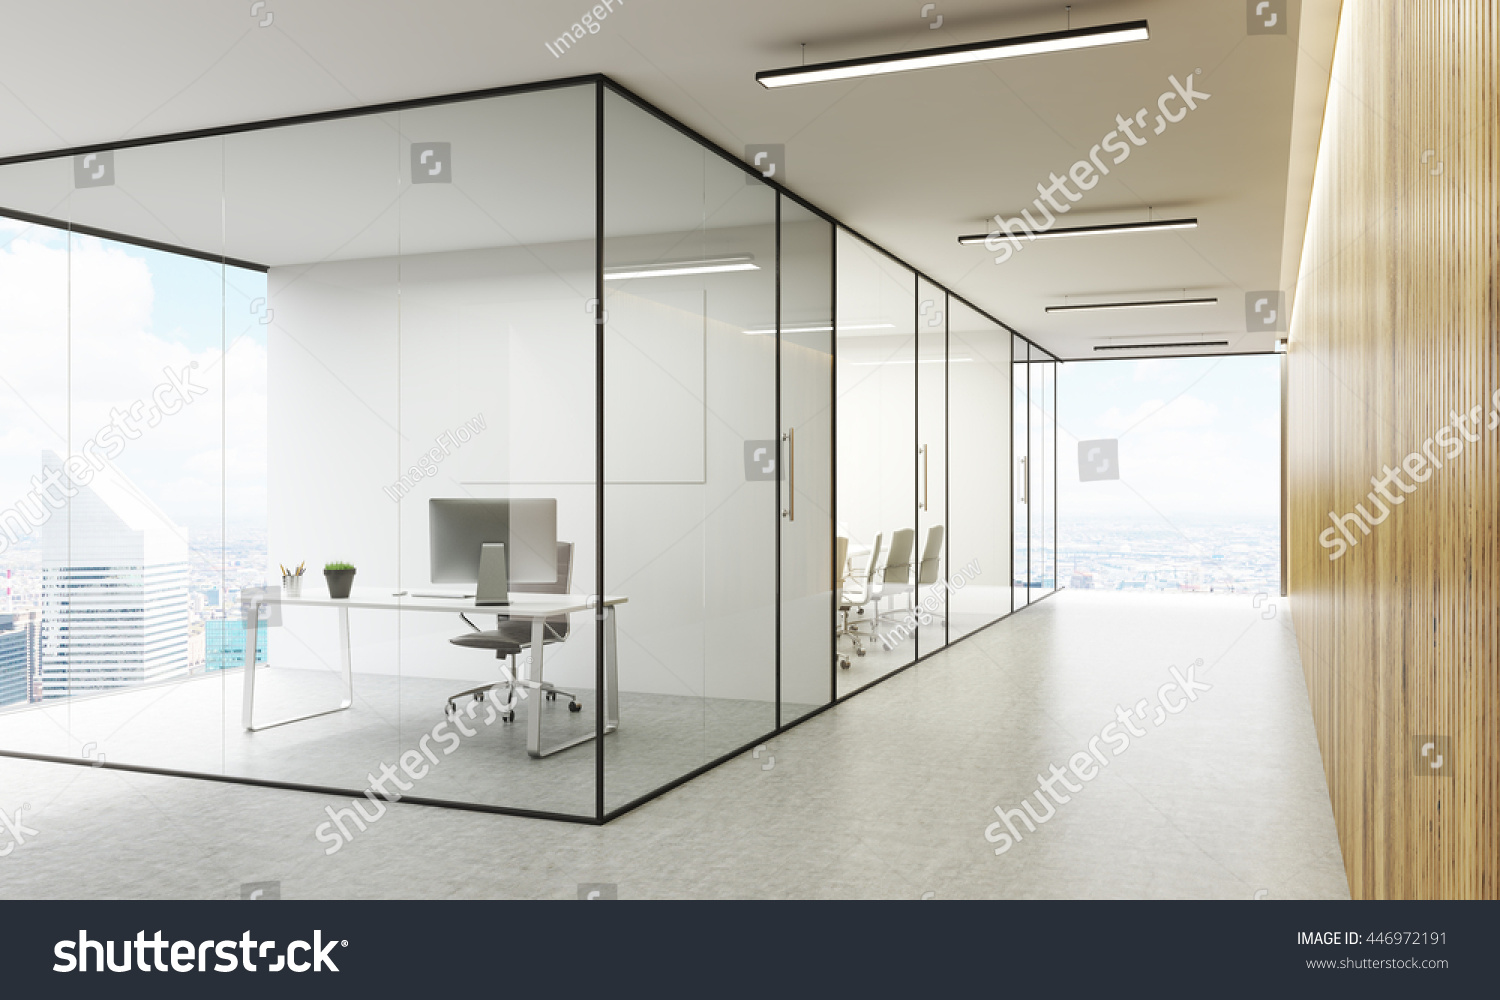 Empty Office Room With Window Cloudiasouvenir Com - Side view of office interior with blank whiteboard behind glass doors hallway with concrete floor